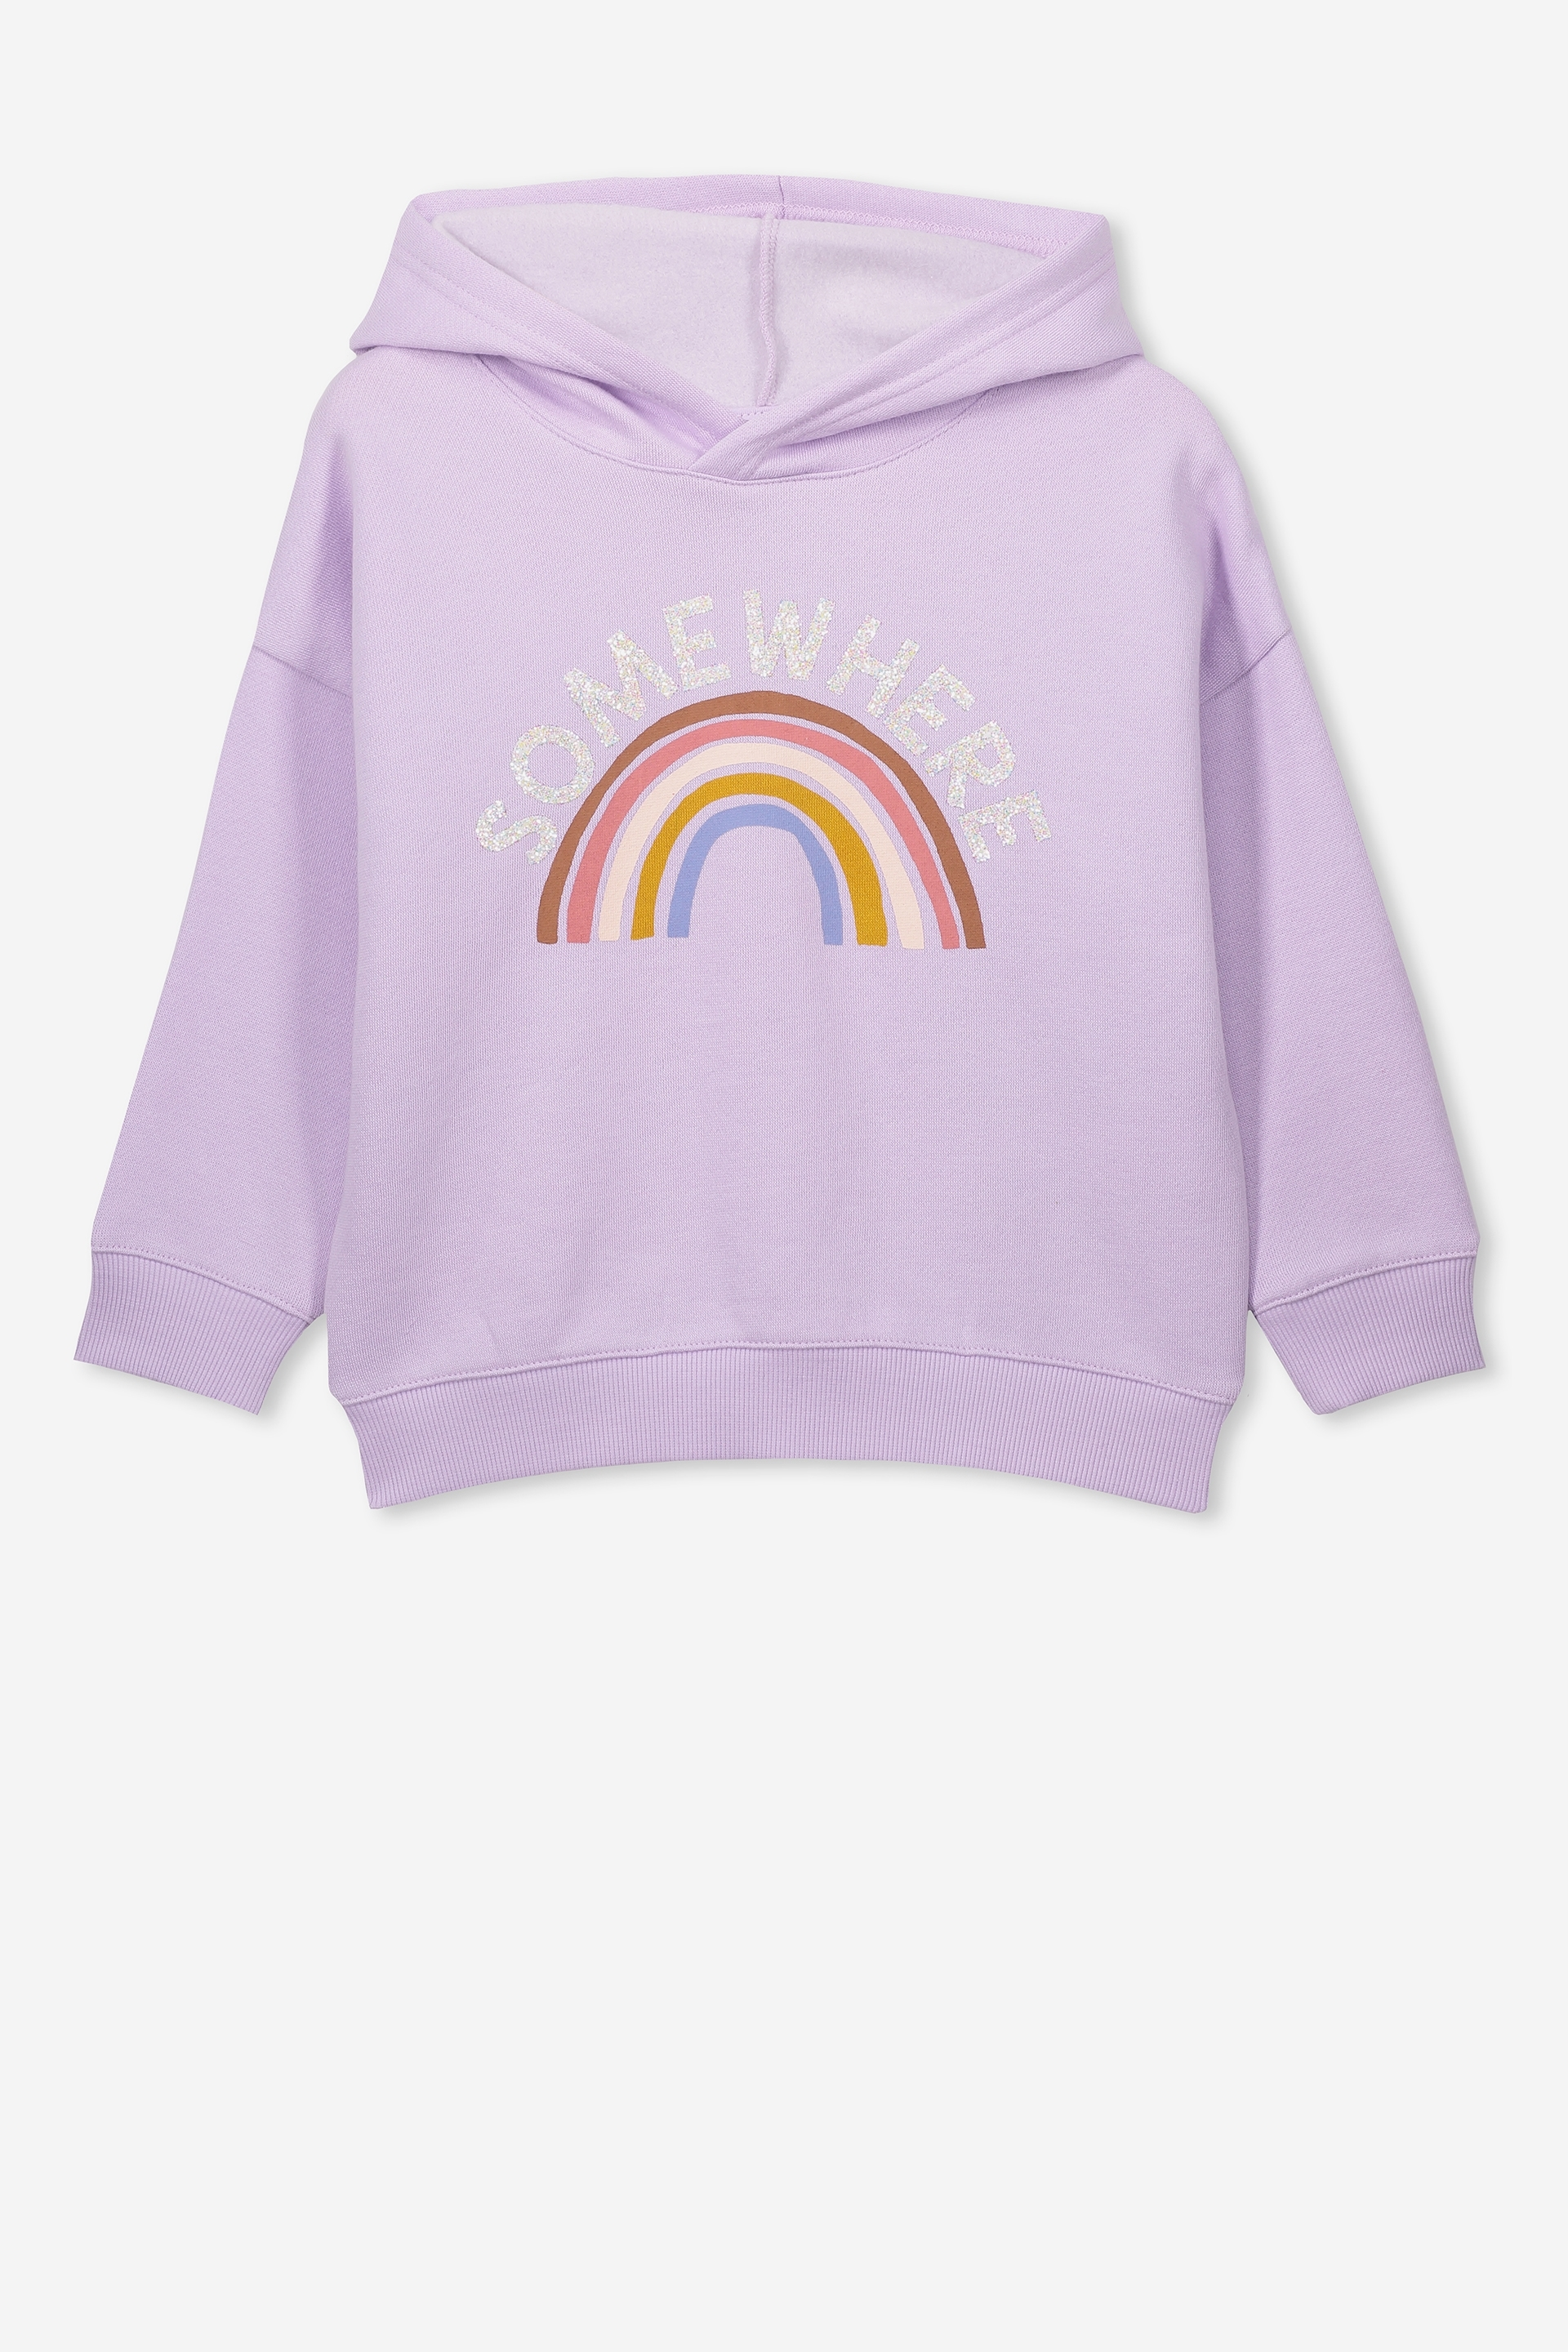 Cotton On Kids - Scarlett Hoodie - Baby lilac/somewhere rainbow/drop